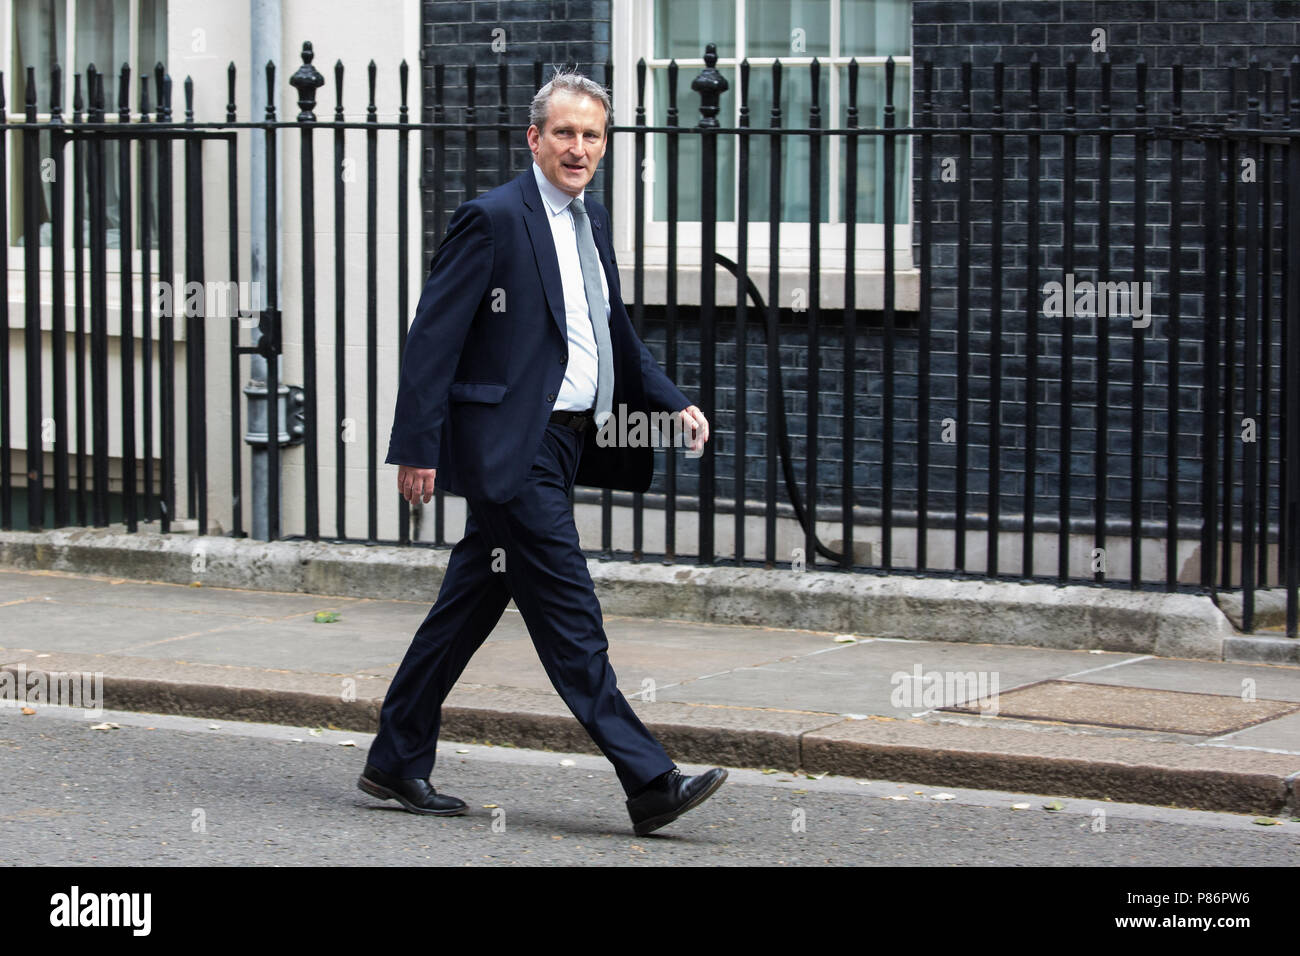 London, UK. 10th July, 2018. Damian Hinds MP, Secretary of State for Education, arrives at 10 Downing Street for the first Cabinet meeting since the resignations as Ministers of David Davis MP and Boris Johnson MP. Credit: Mark Kerrison/Alamy Live News - Stock Image